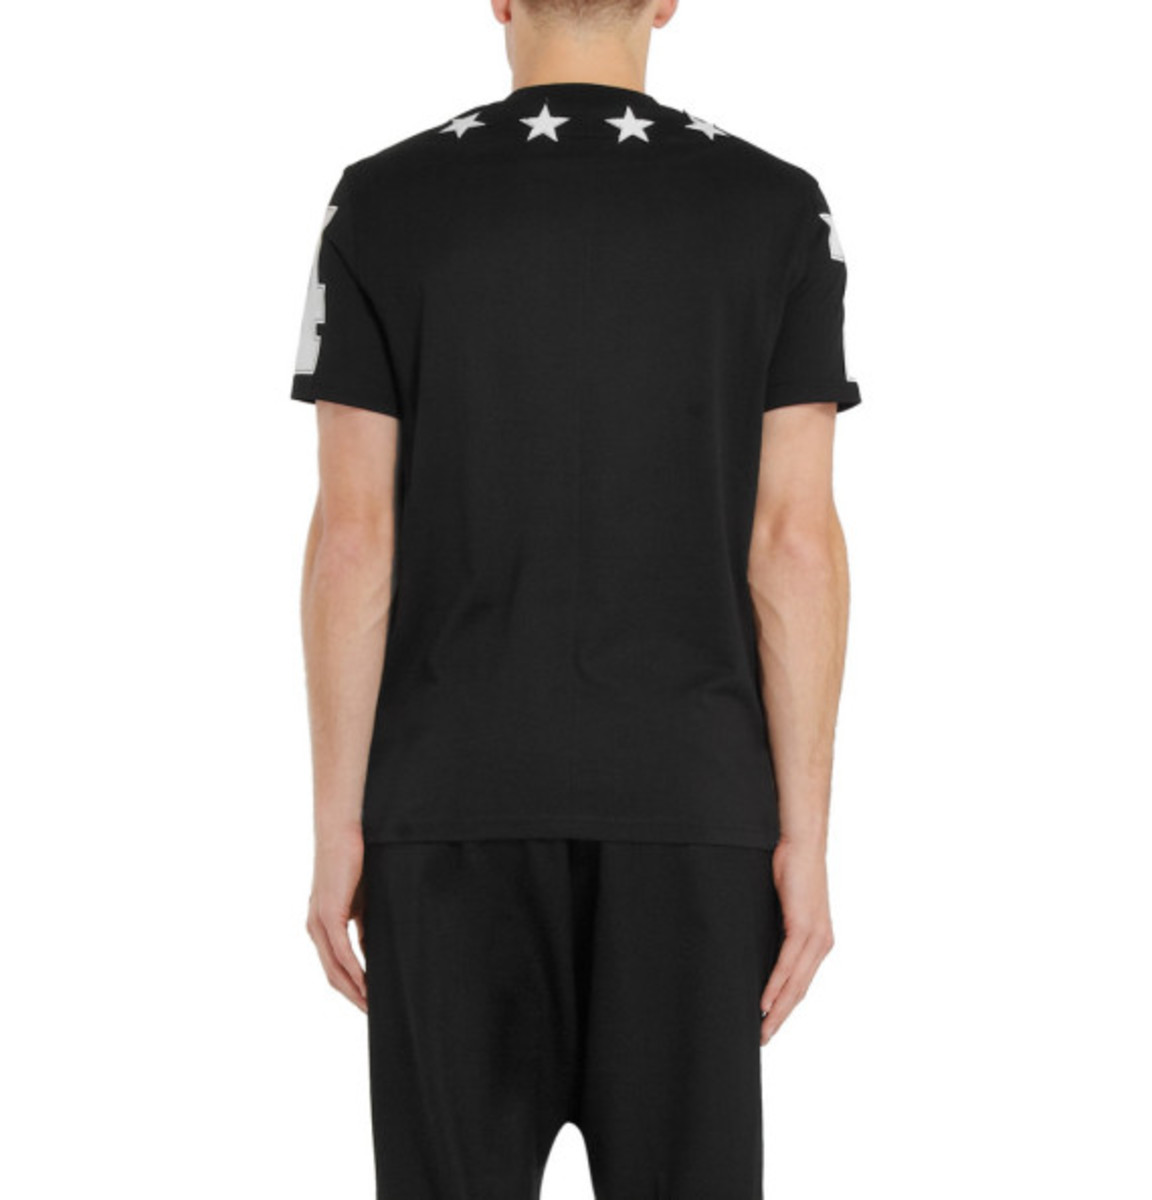 givenchy-cuban-fit-embroidered-star-tee-06